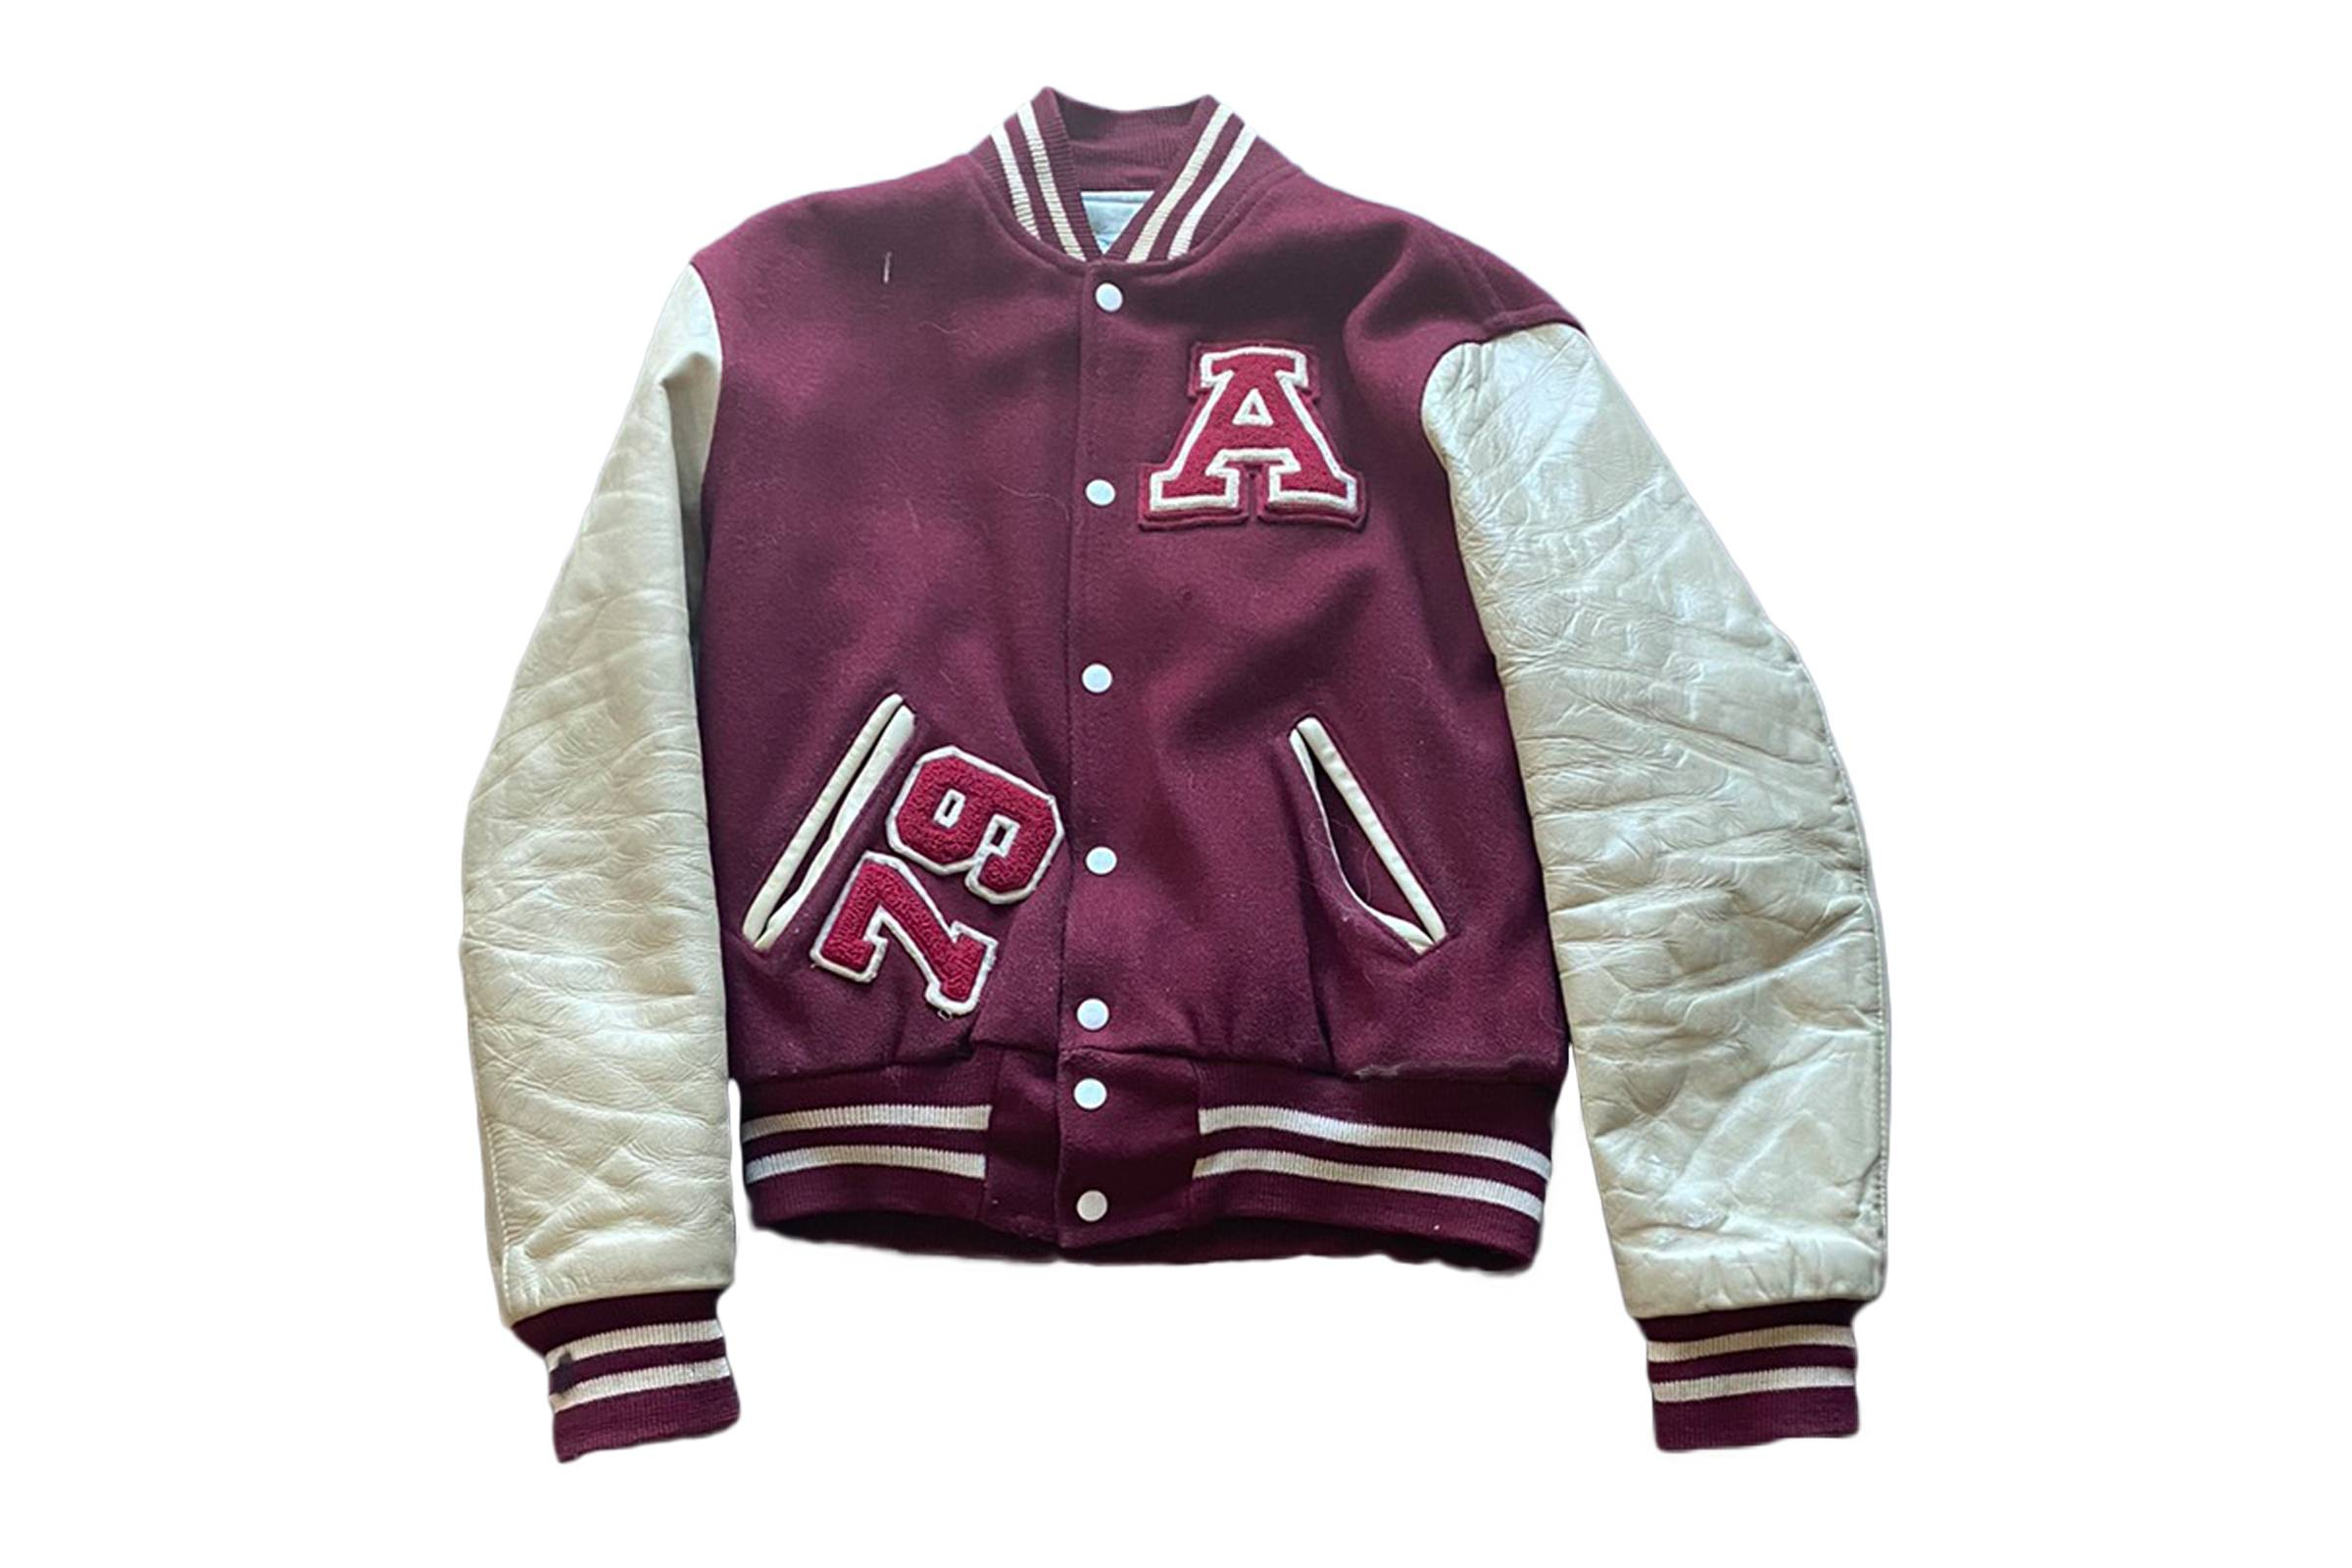 Vintage Arlington High School Varsity Jacket